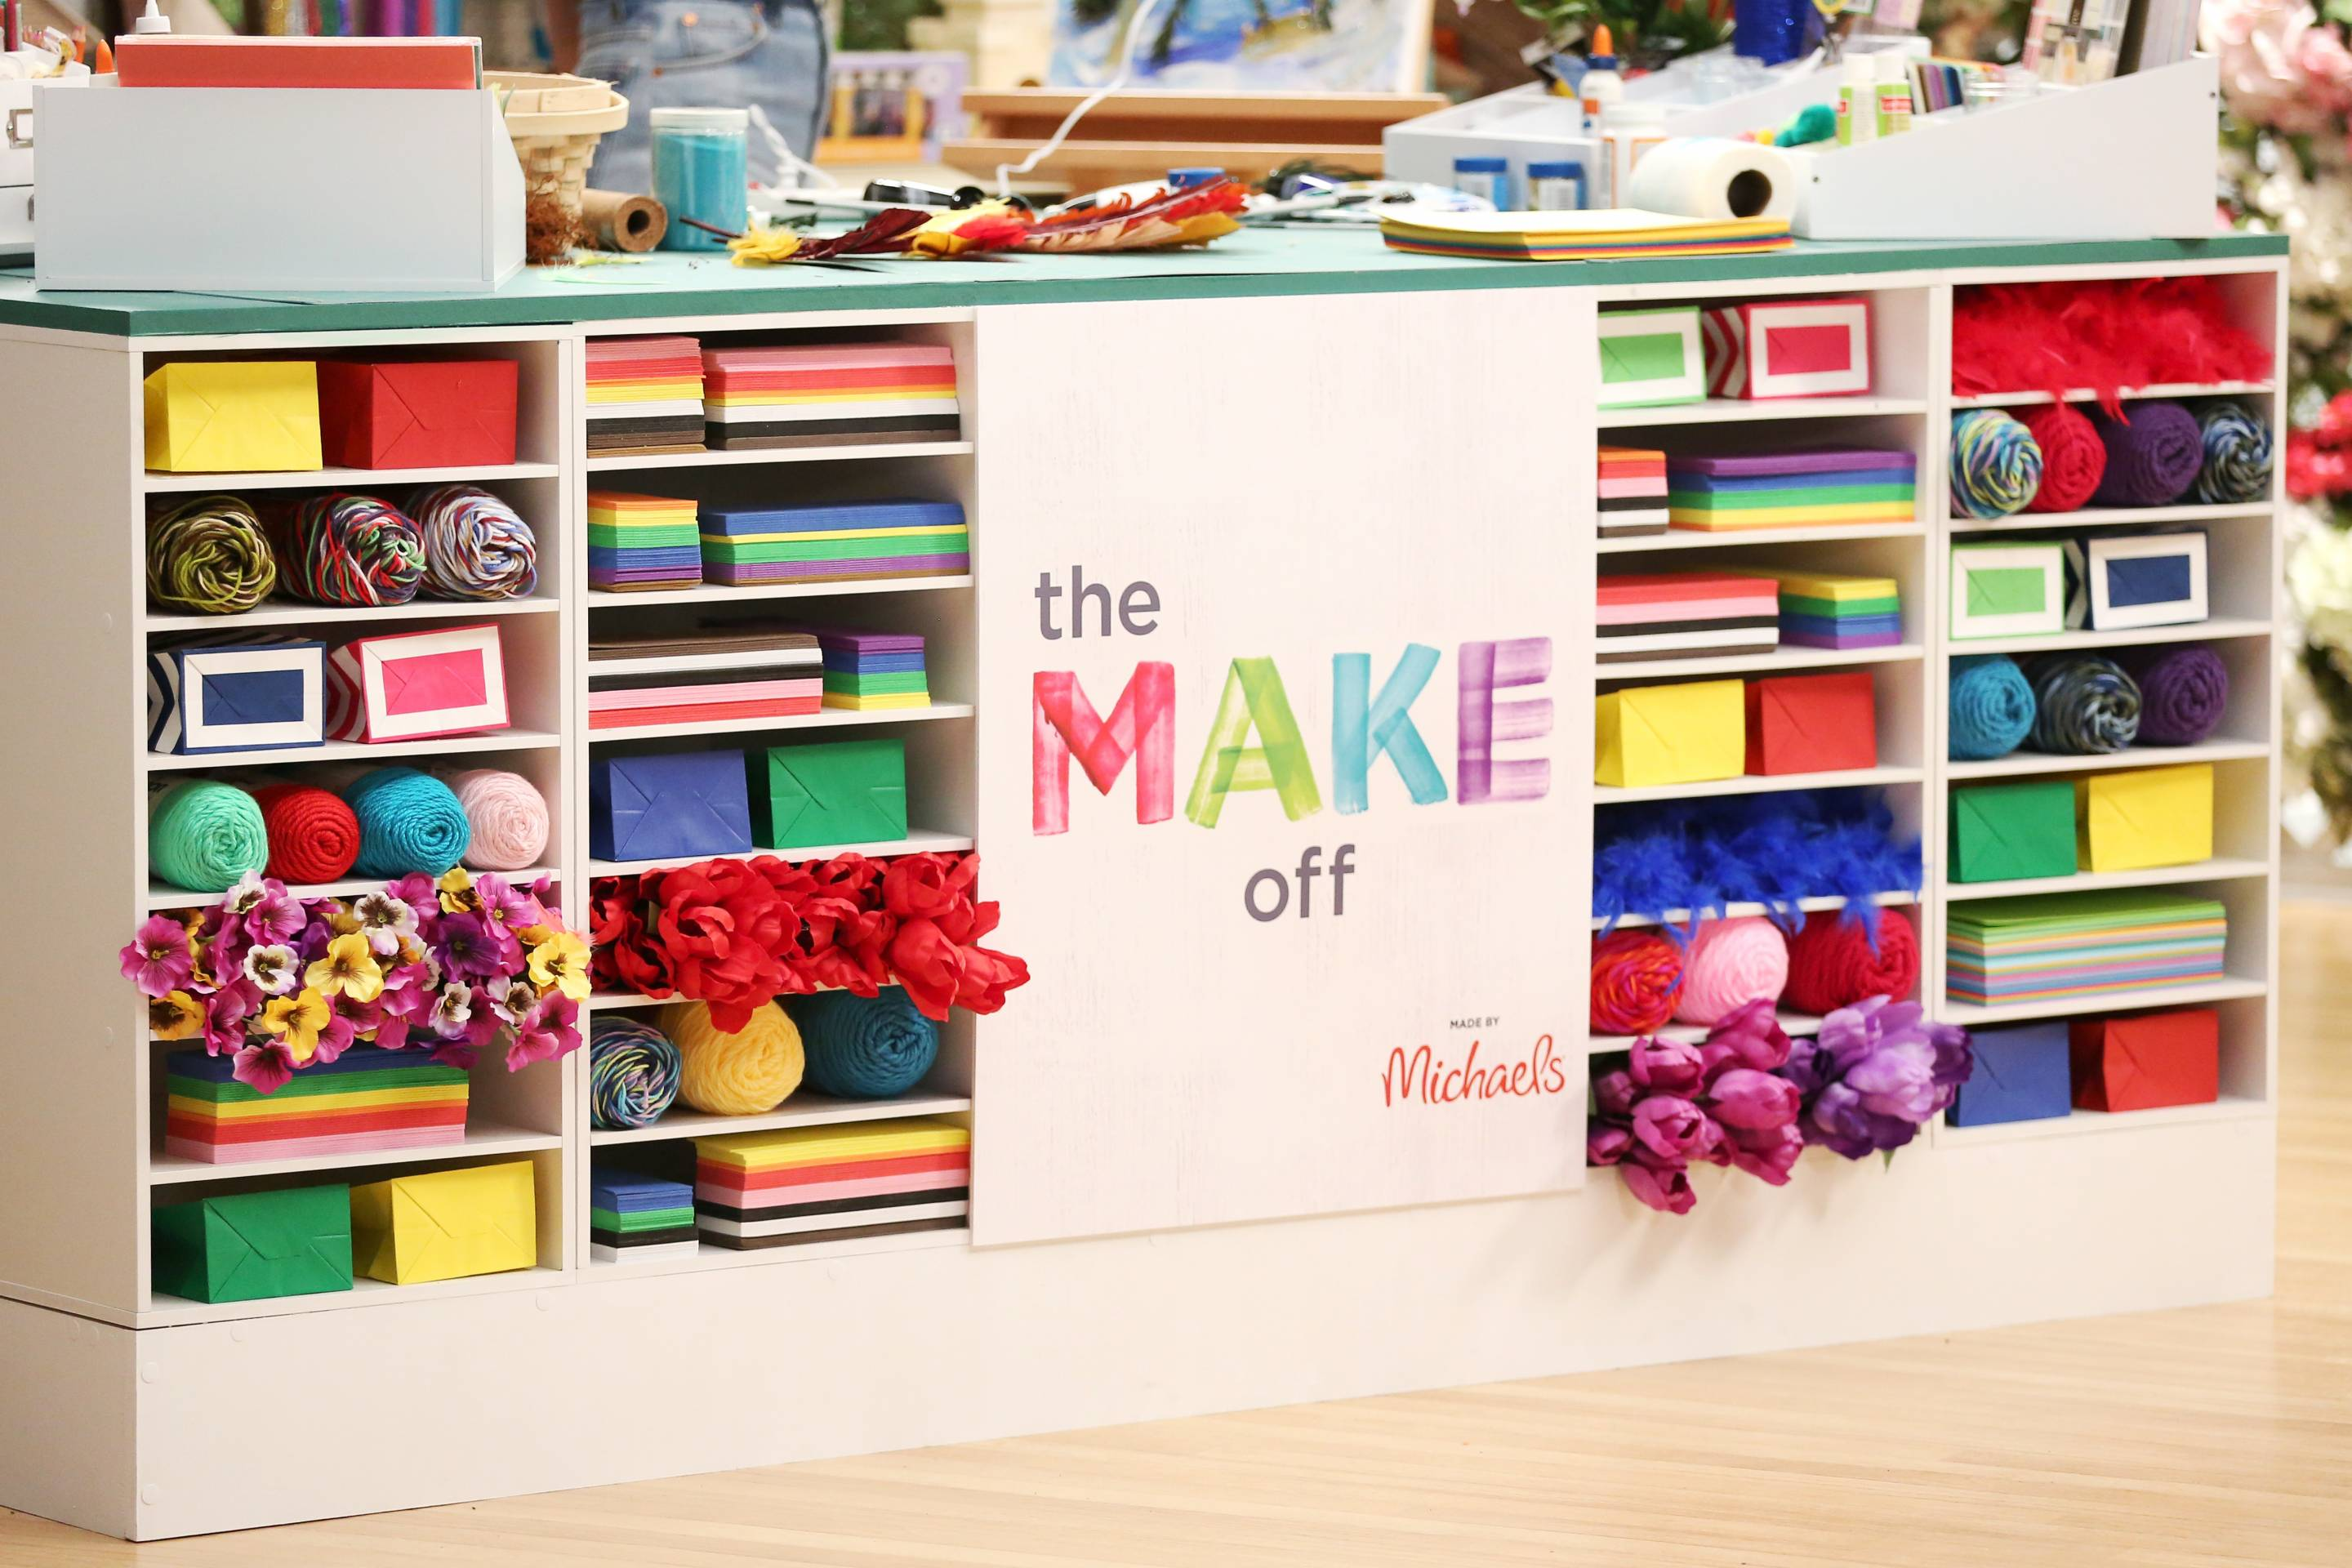 Behind The Scenes: Making with Michaels